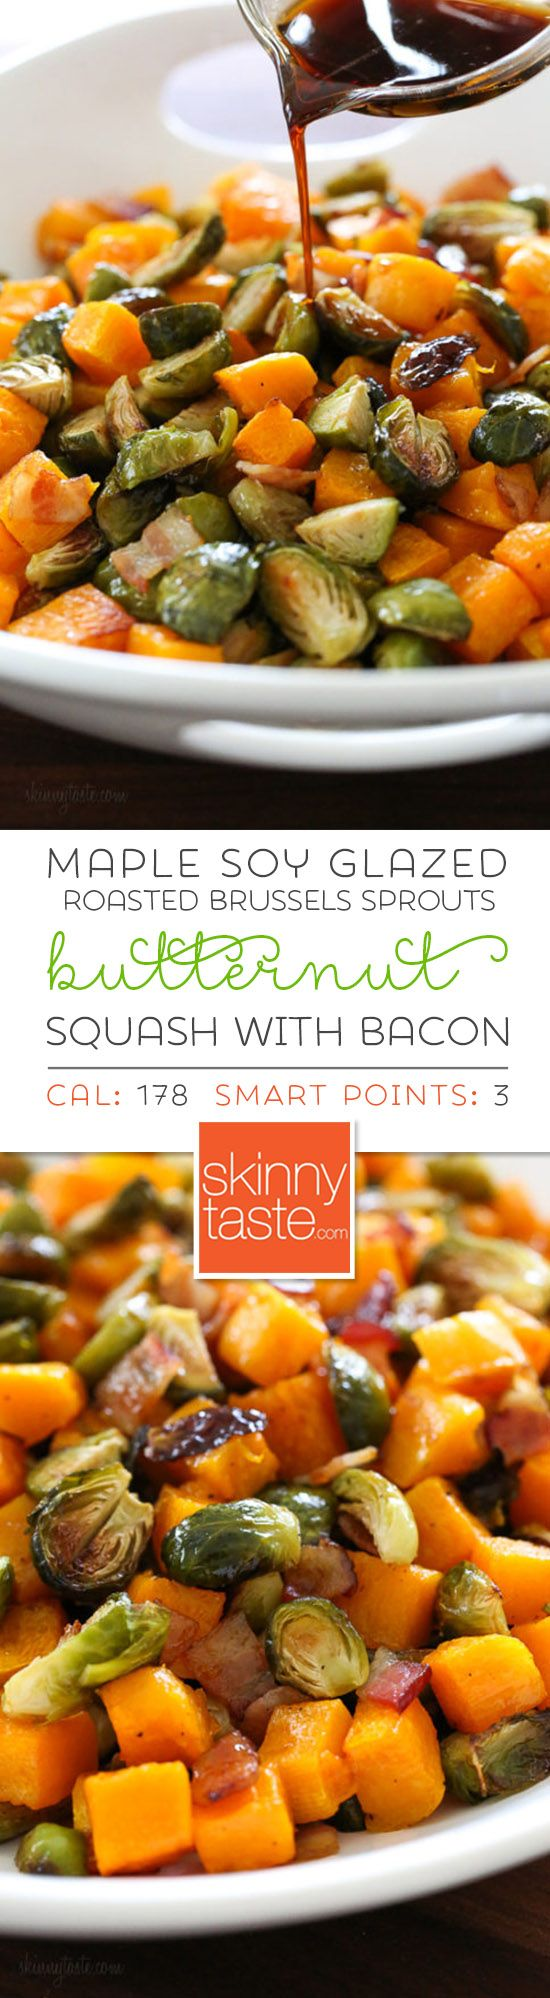 Roasted Brussels Sprouts and Butternut Squash are delicious on their own, but adding bacon and a maple soy glaze makes them over-the-top delicious! Made all on one sheet pan, you can double or triple this recipe to feed a crowd by adding more sheet pans. #maplebrusselssprouts #brusselssprouts #butternutsquash